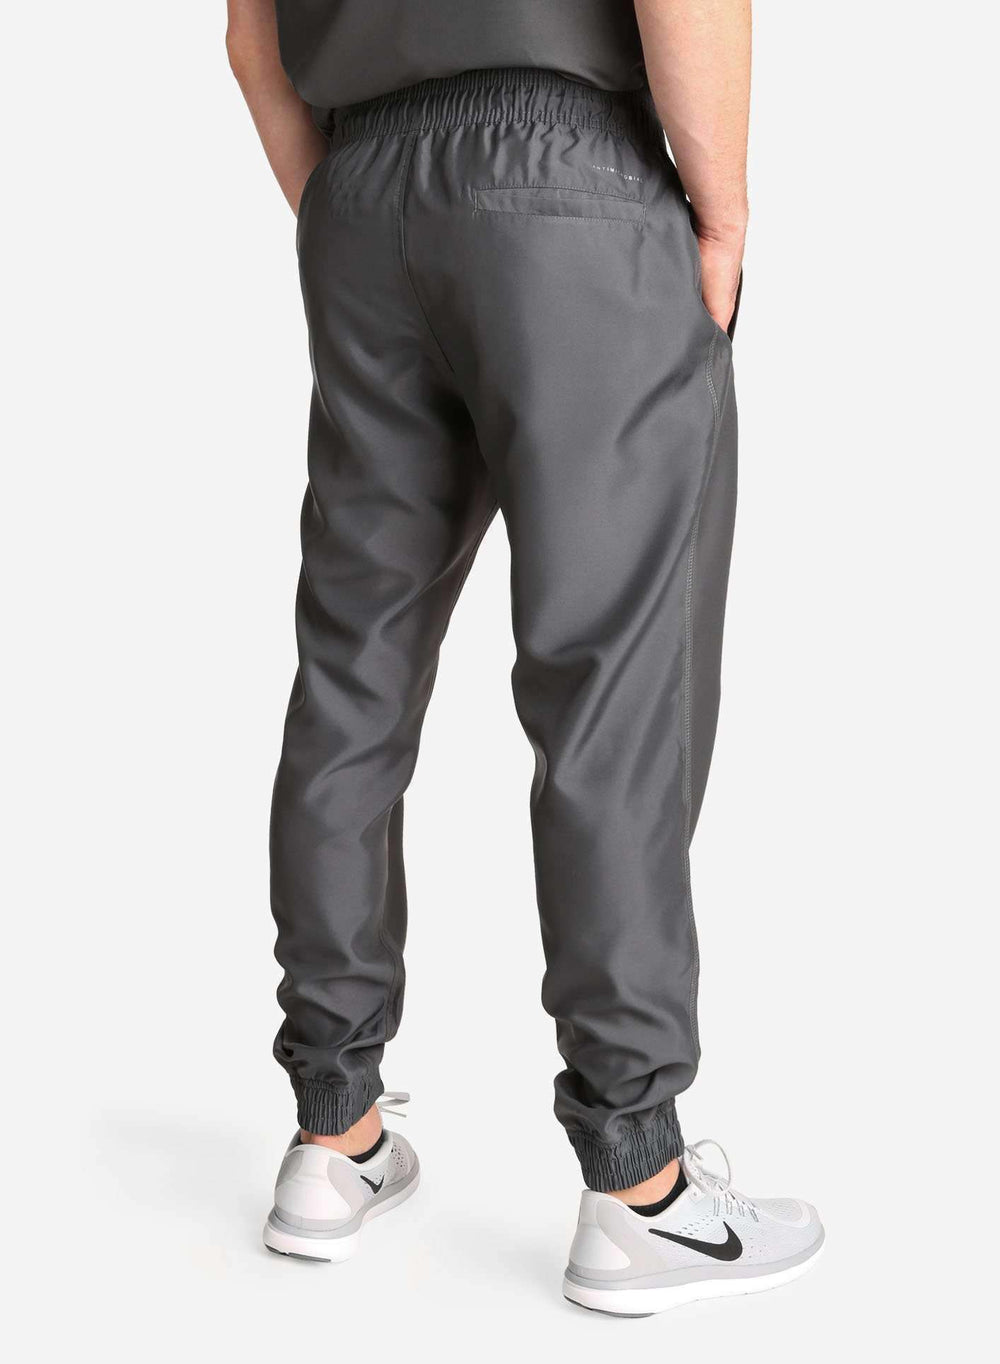 Men's Jogger Scrub Pants in Dark Grey Rear View